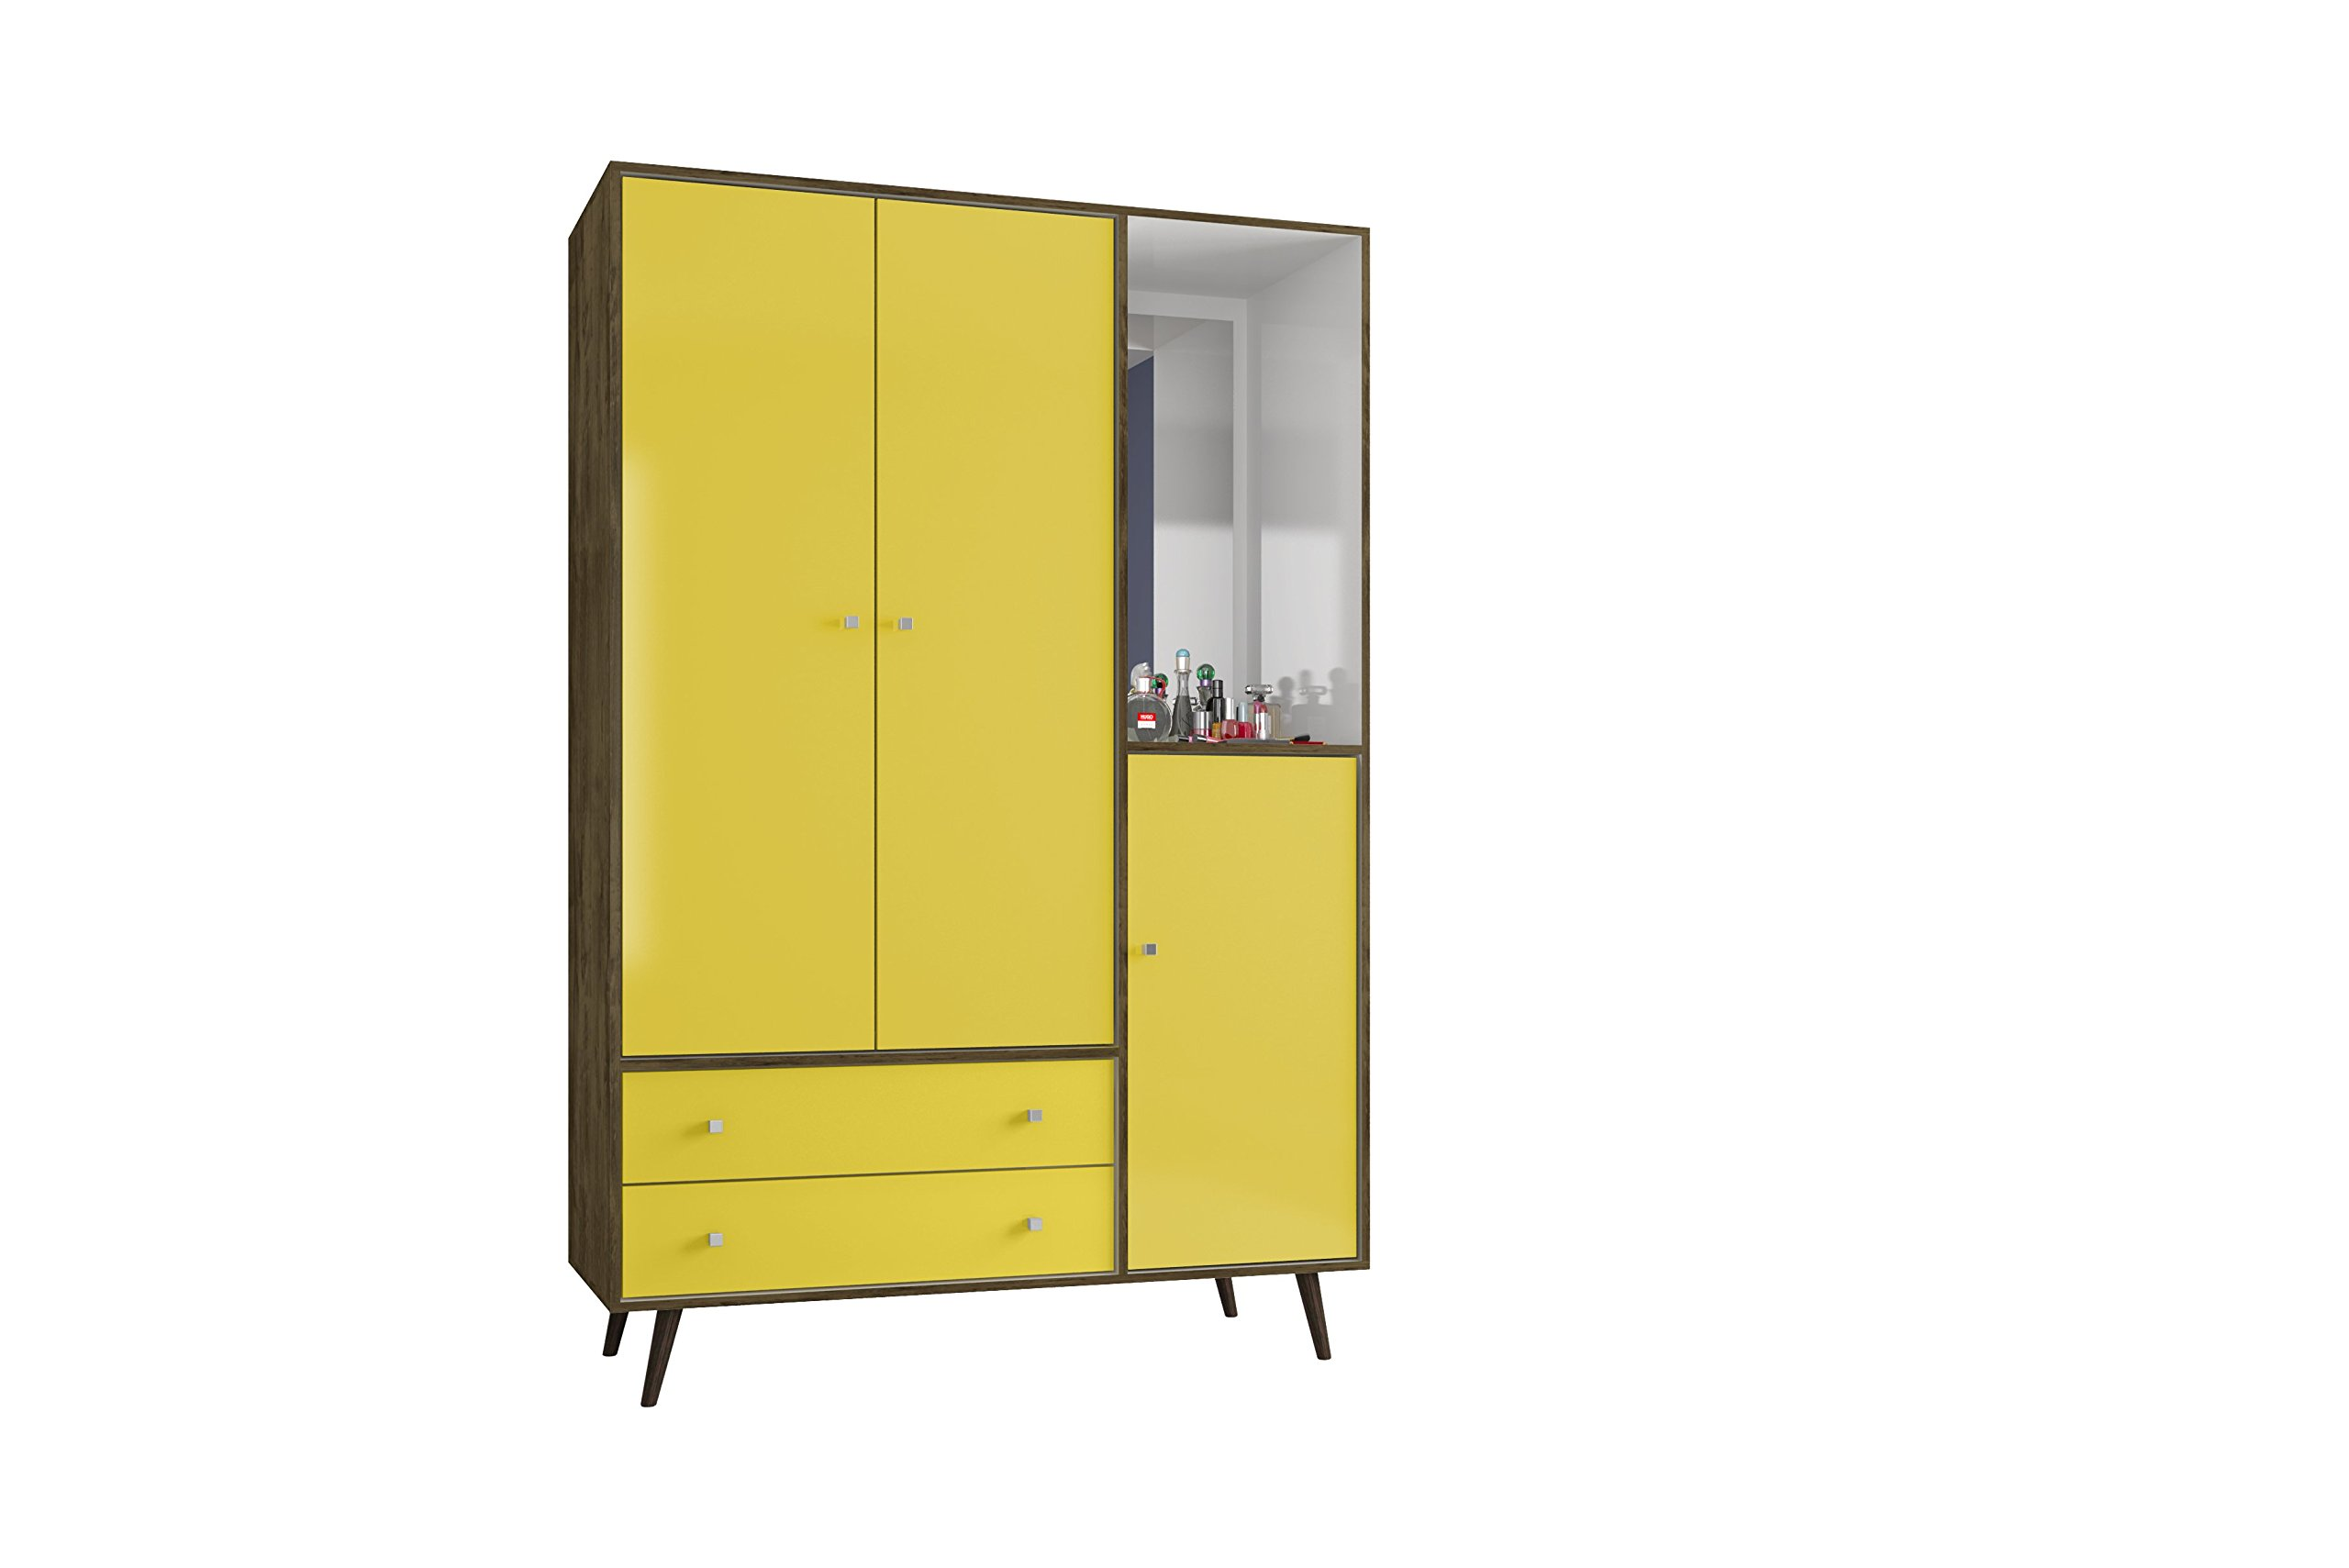 Manhattan Comfort Liberty Collection Mid Century Modern Armoire Closet With Two Cabinets and Two Drawers With Open Shelf Space, Yellow/Wood Trim